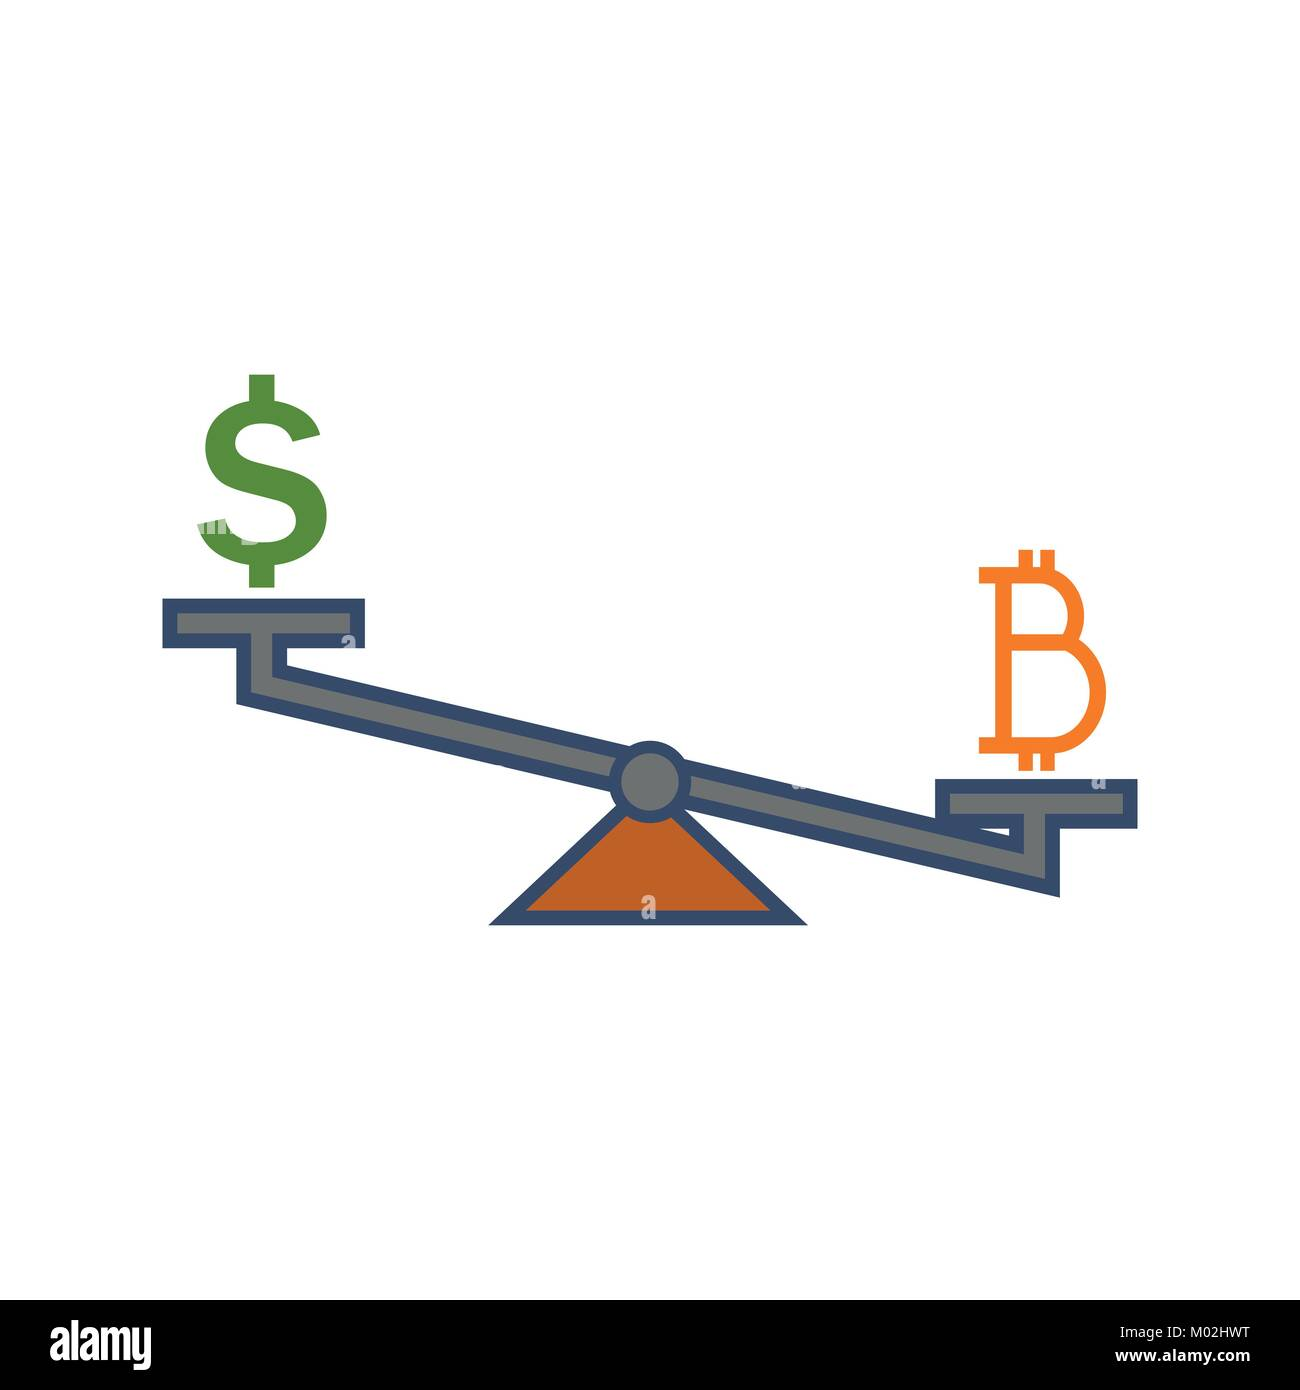 Simple Bitcoin Investment Rate Vector Illustration Graphic - Stock Image